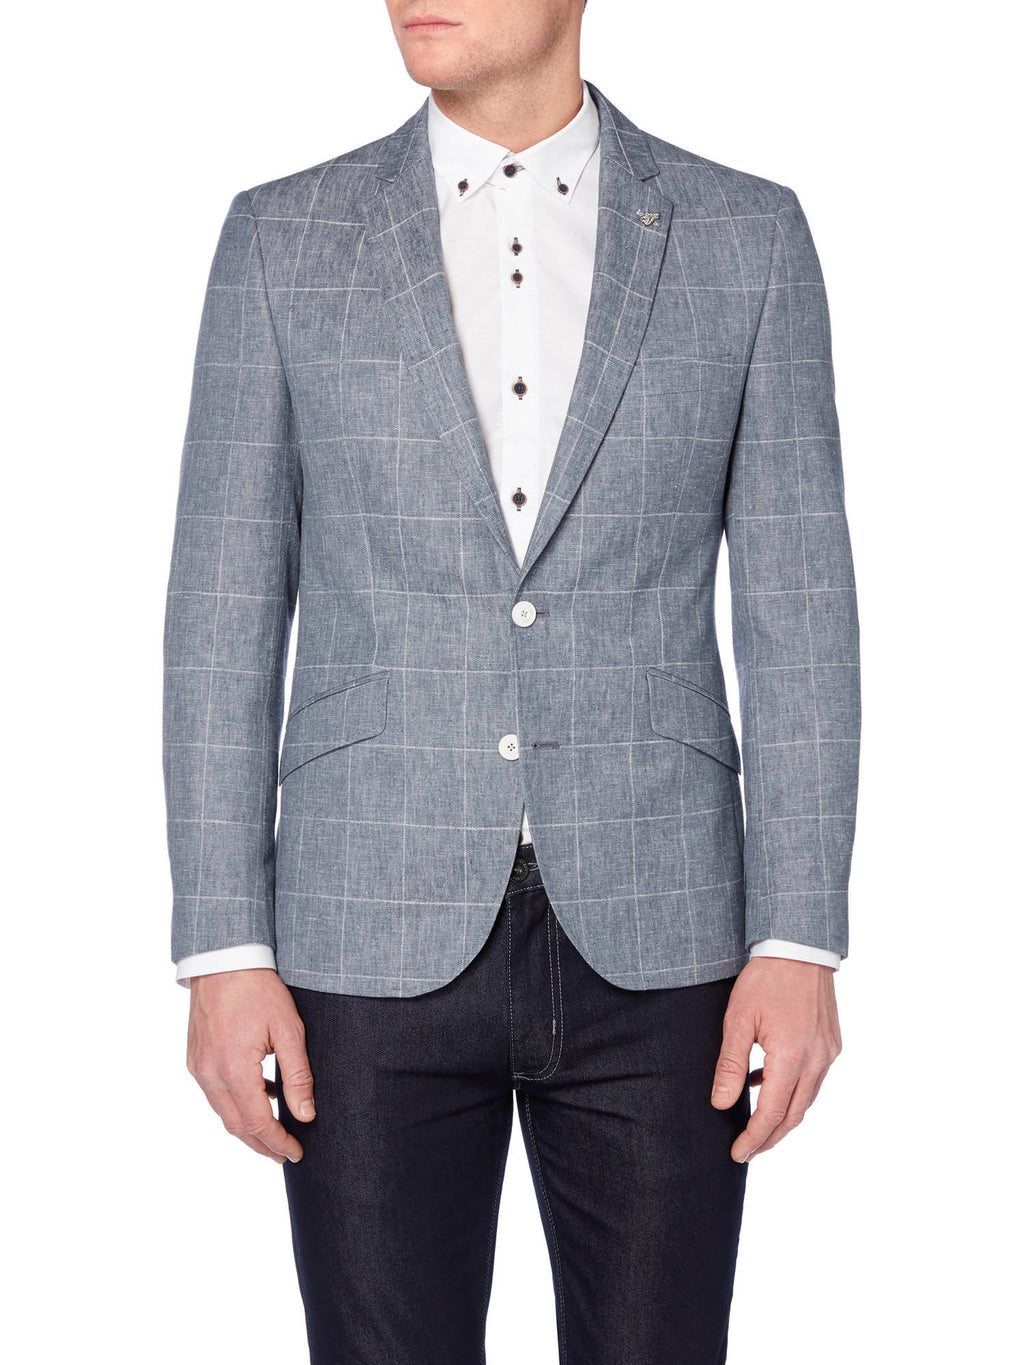 A blue checked linen blend blazer from Remus Uomo